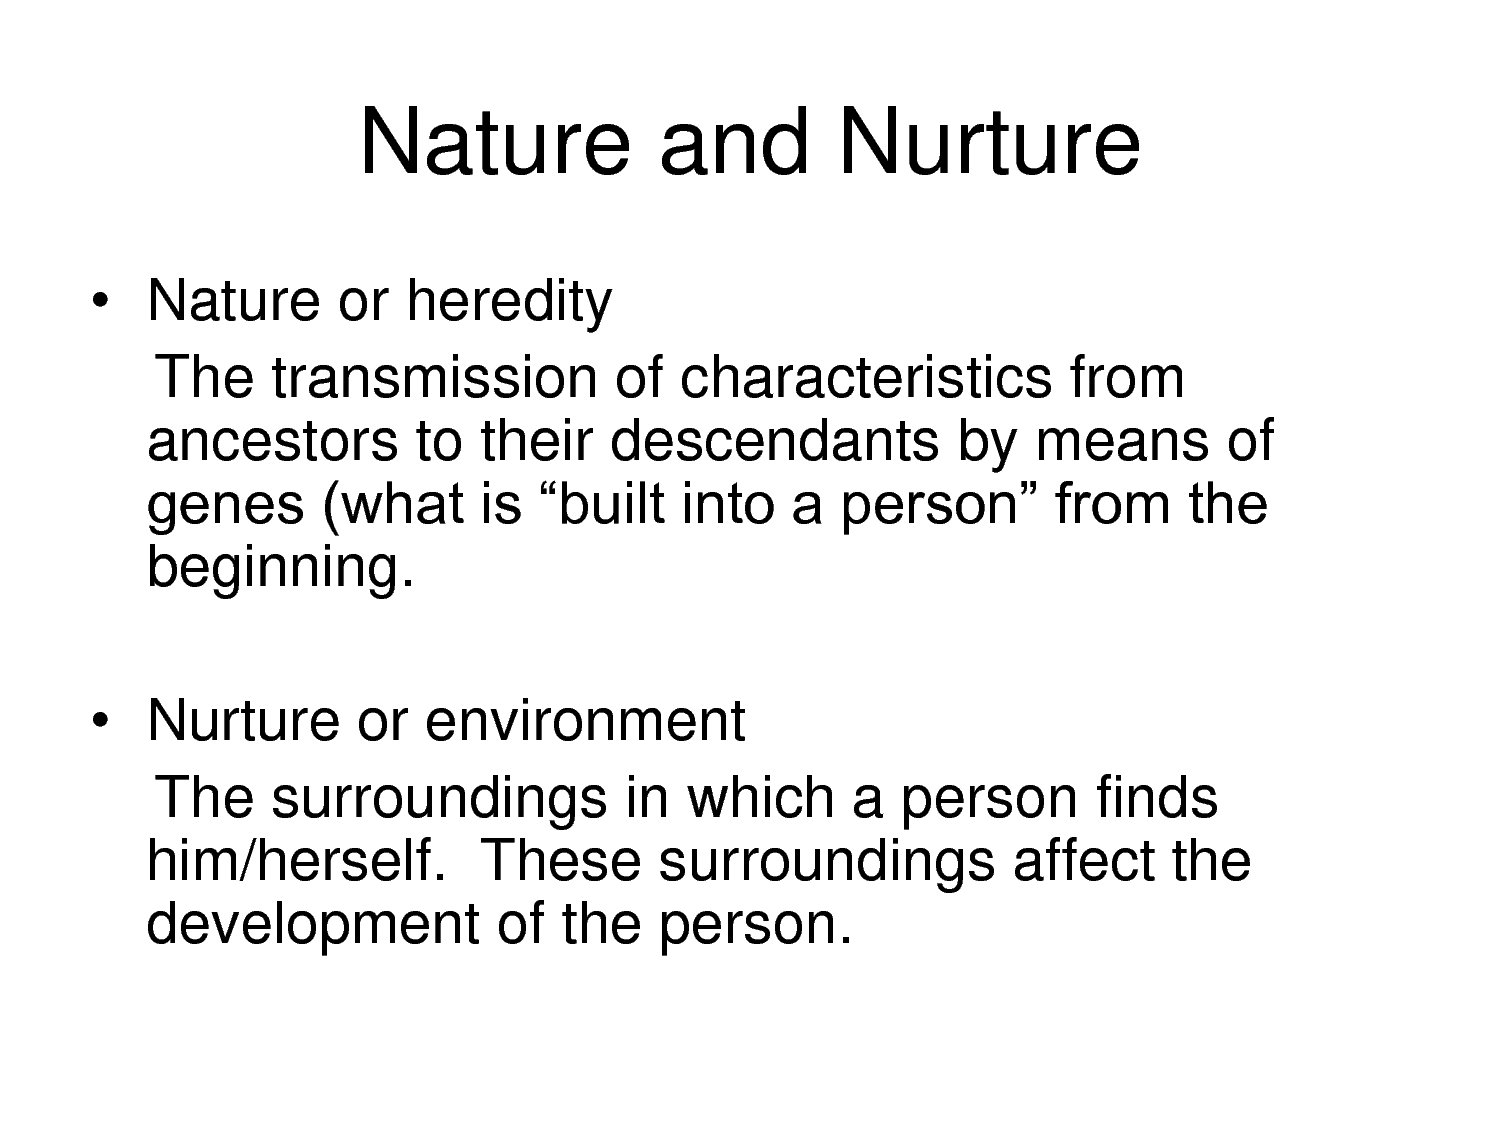 the controversy of nature vs nurture essay Free coursework on nature vs nurture from essayukcom, the uk essays company for essay, dissertation and coursework writing.